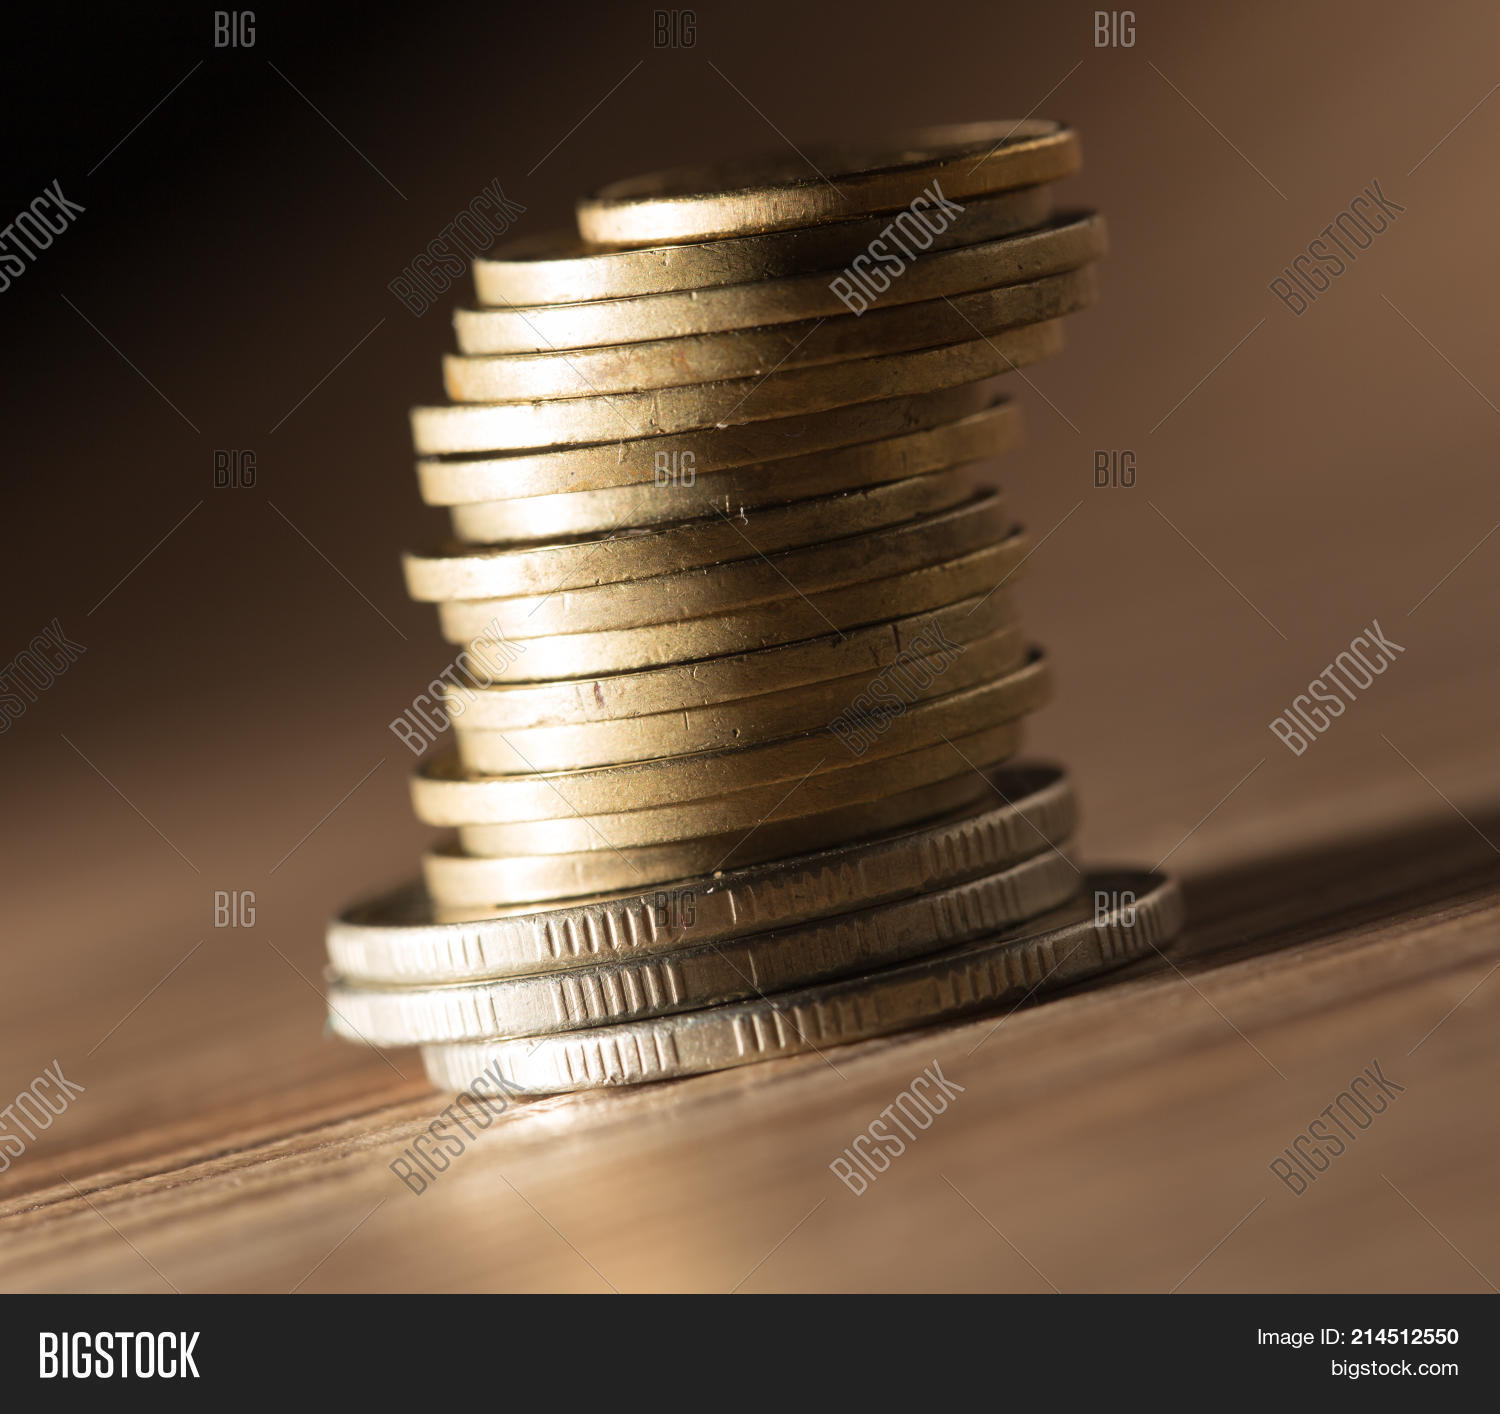 Coins On Table  Close Image & Photo (Free Trial) | Bigstock